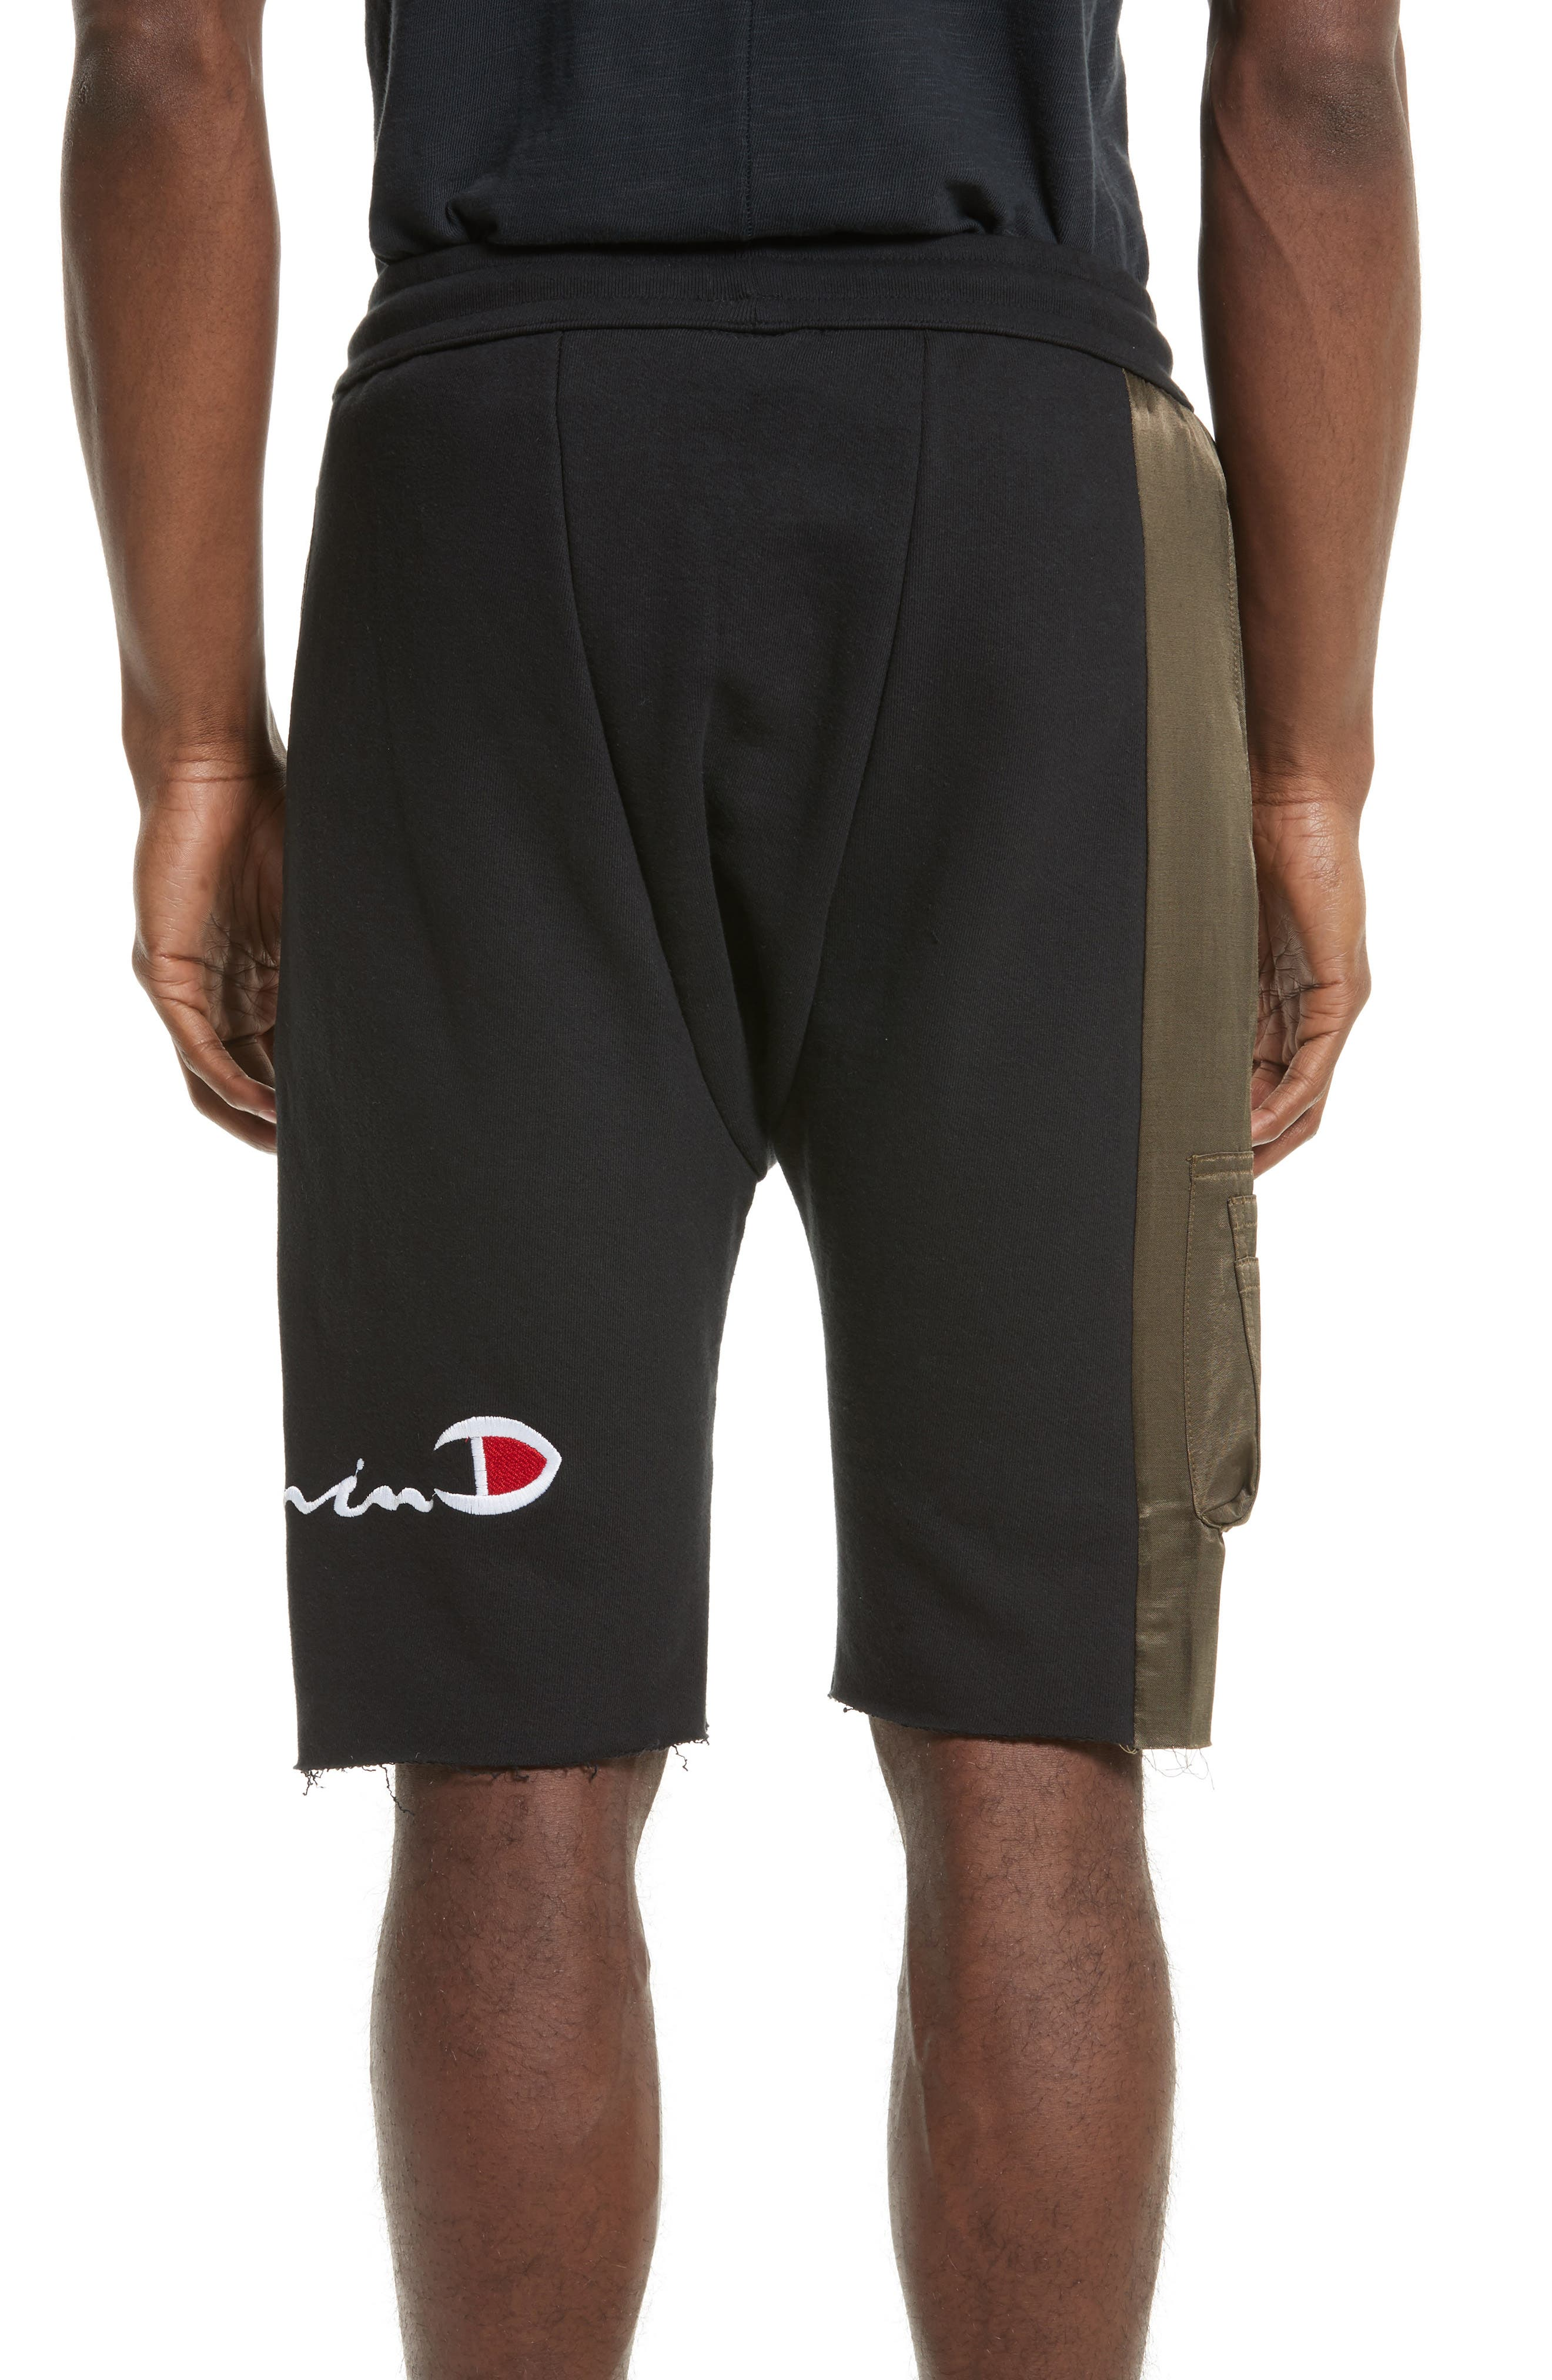 Alternate Image 2  - Drifter Vitamin D Graphic Panel Shorts